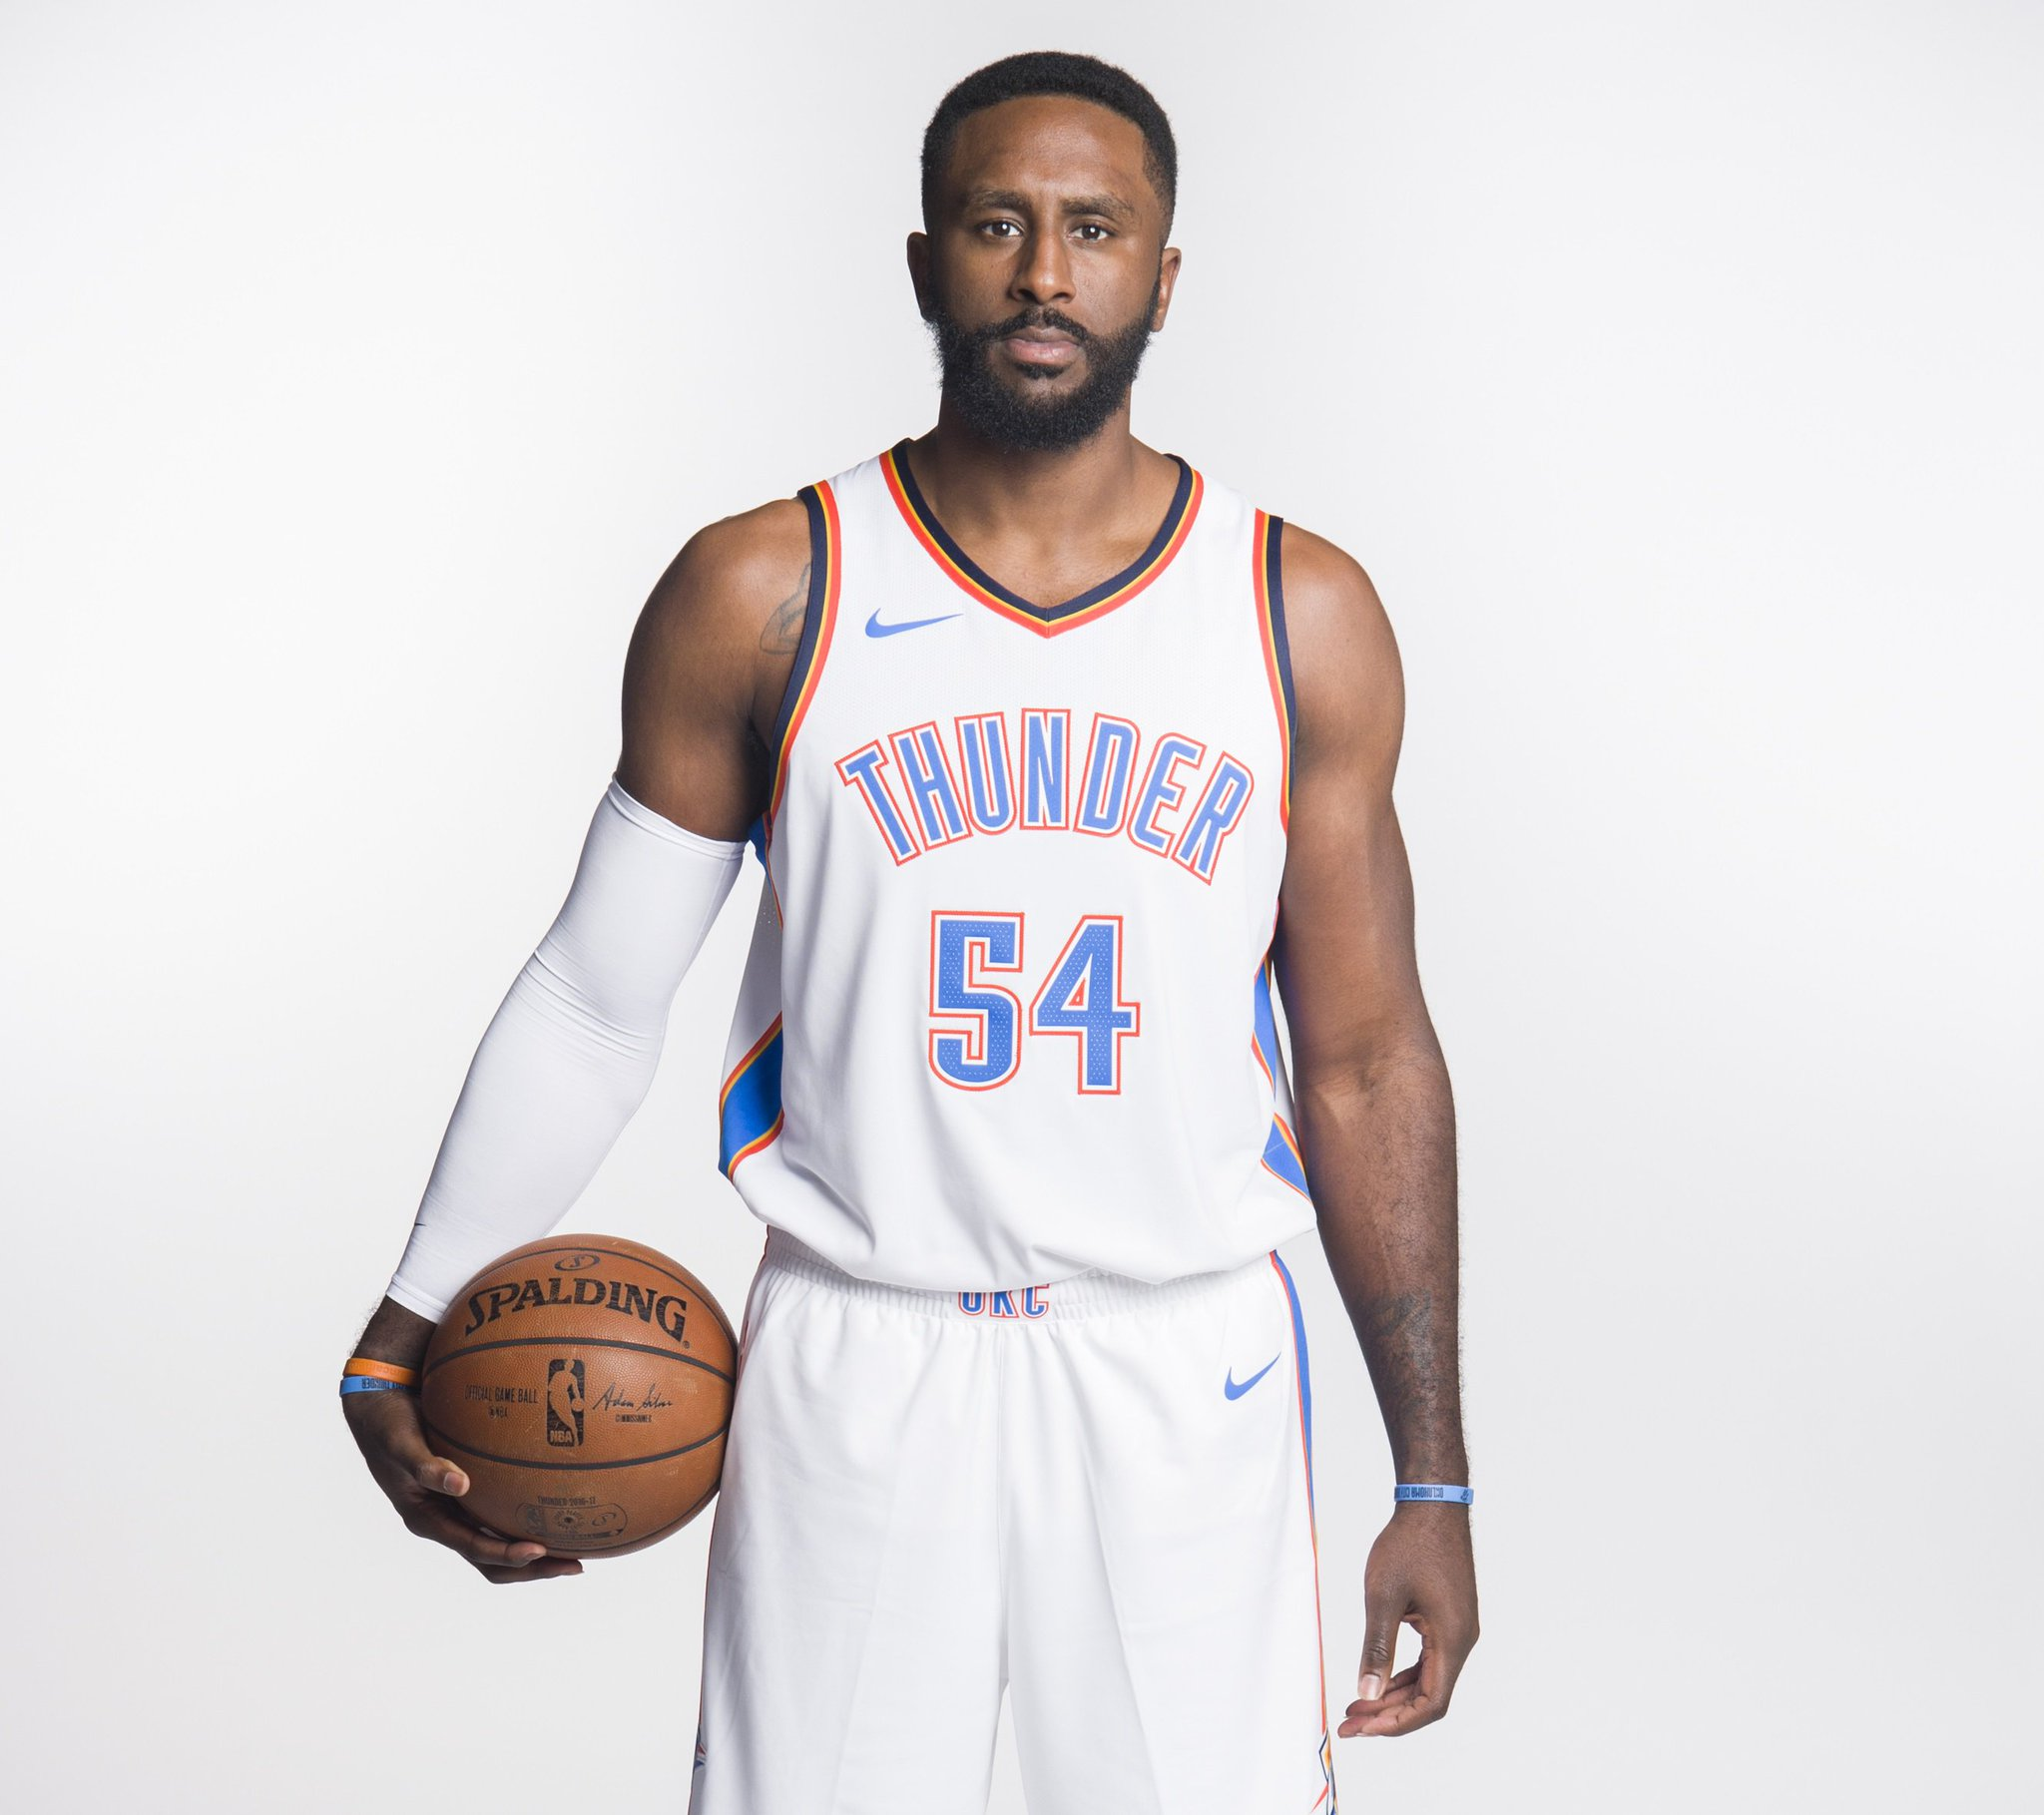 Join us in wishing @pdpatt of the @okcthunder a HAPPY 29th BIRTHDAY!  #NBABDAY #ThunderUp https://t.co/uvmWMLuo01